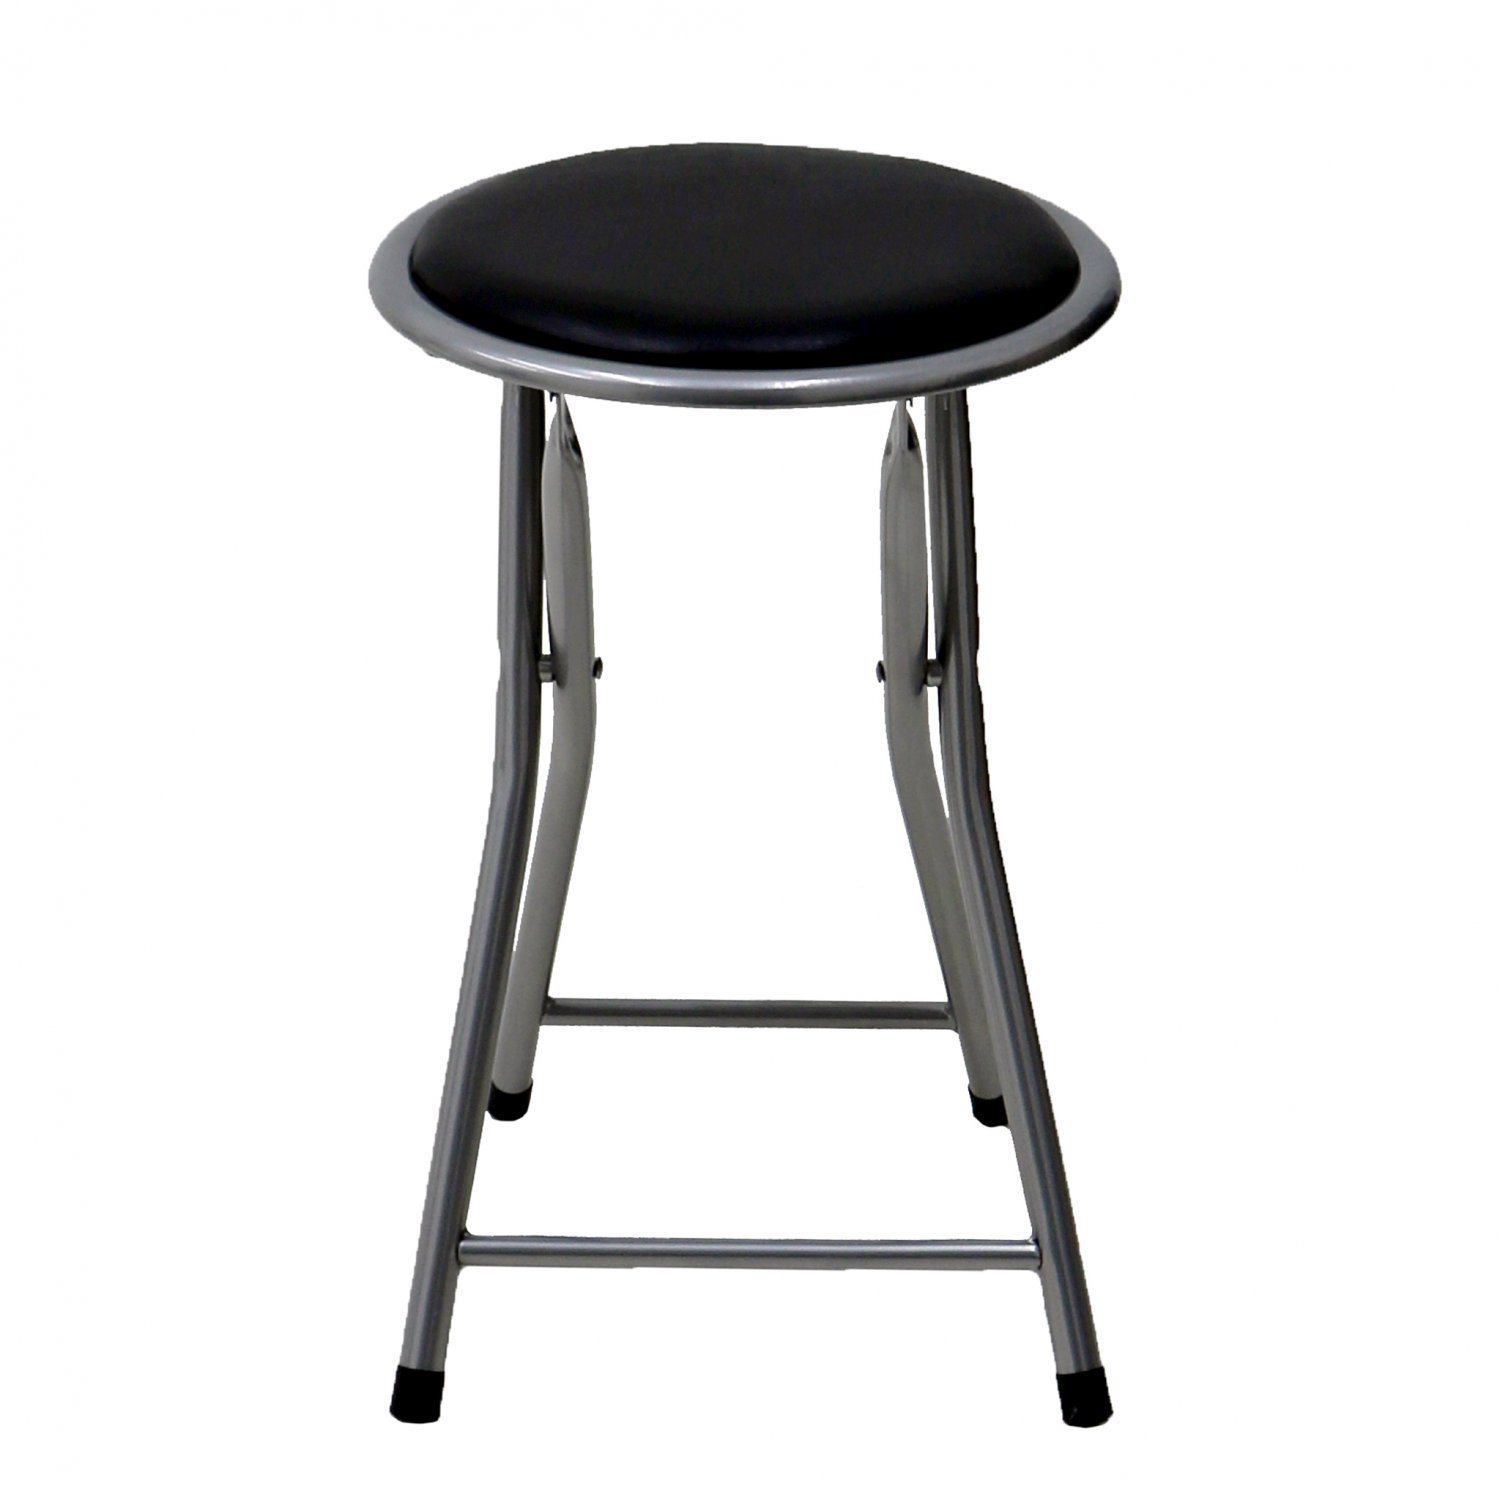 Padded Stool Black Padded Folding Breakfast Kitchen Bar Stool Seat 9